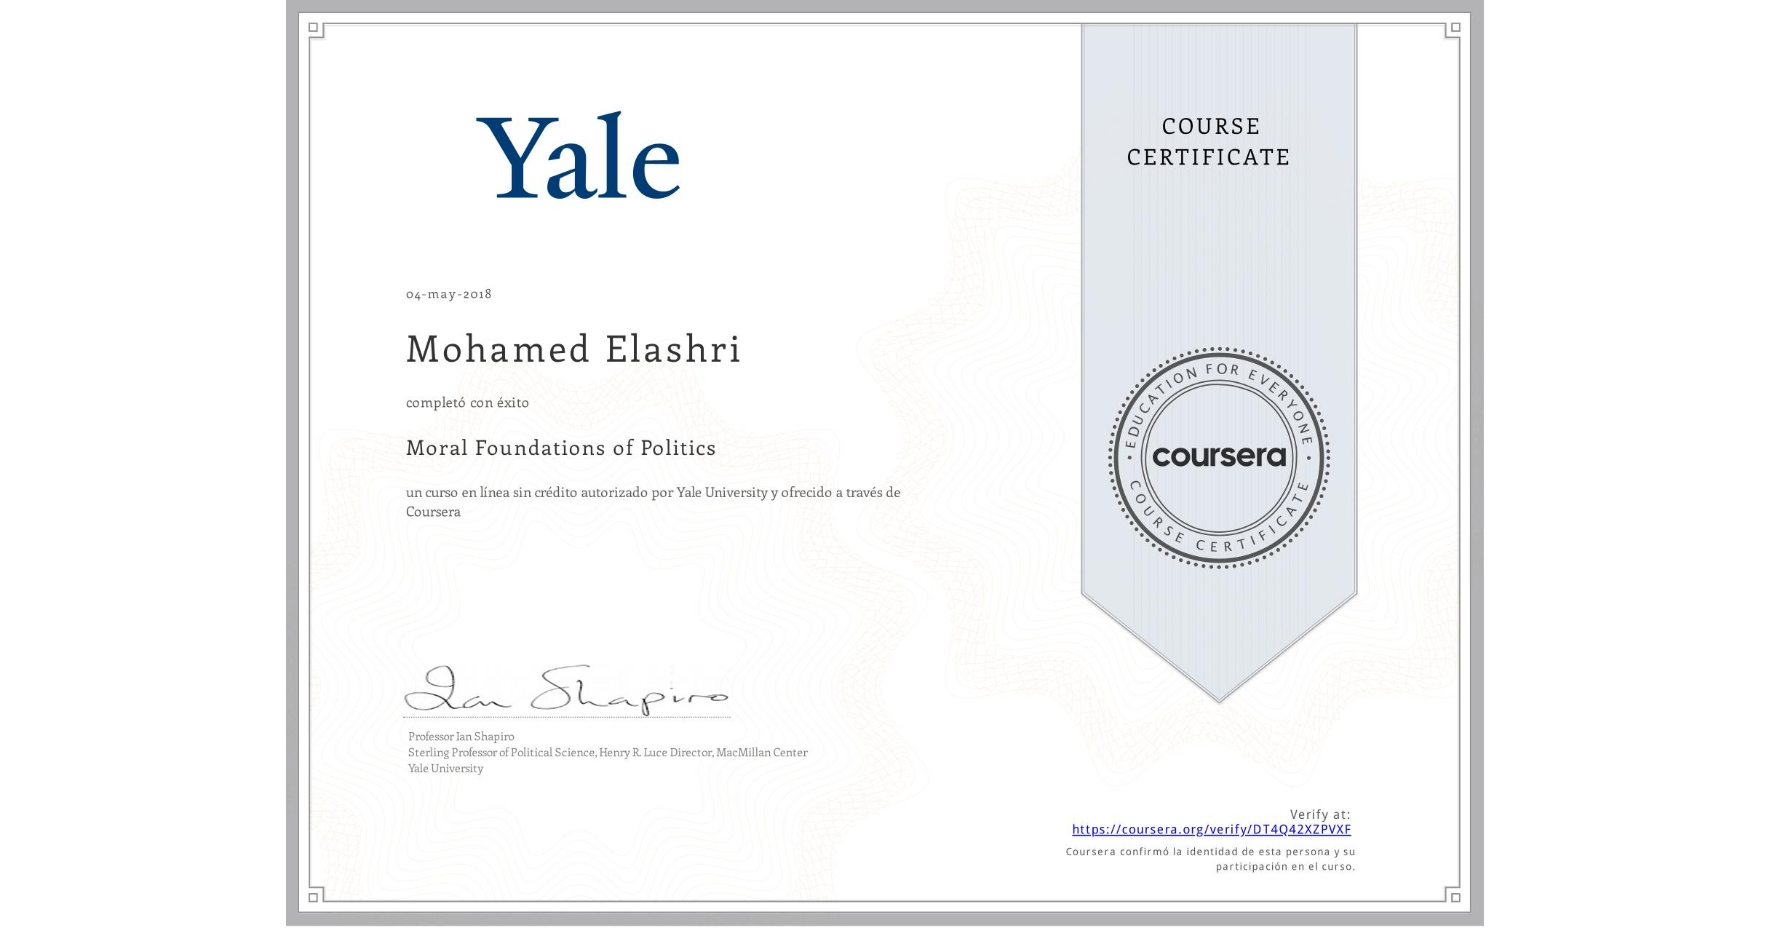 View certificate for Mohamed Elashri, Moral Foundations of Politics , an online non-credit course authorized by Yale University and offered through Coursera